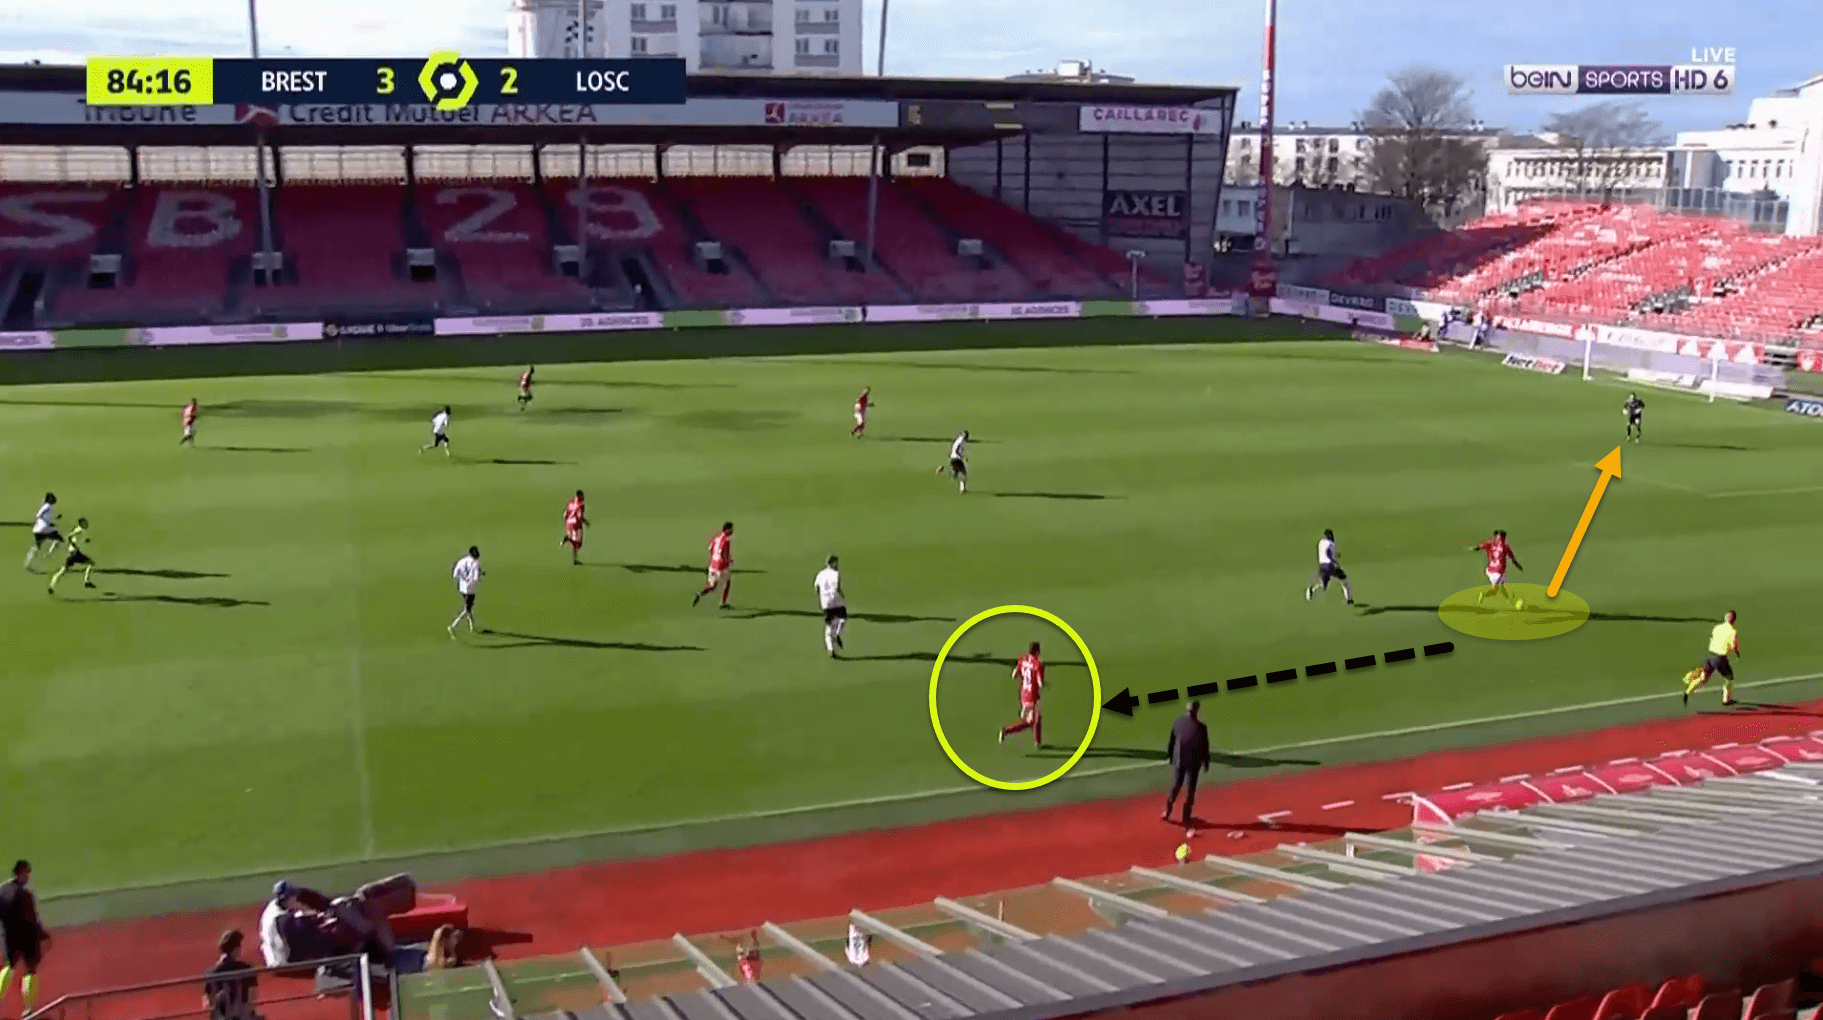 Jean-Kévin Duverne at Brest 2020/21 - scout report tactical analysis tactics